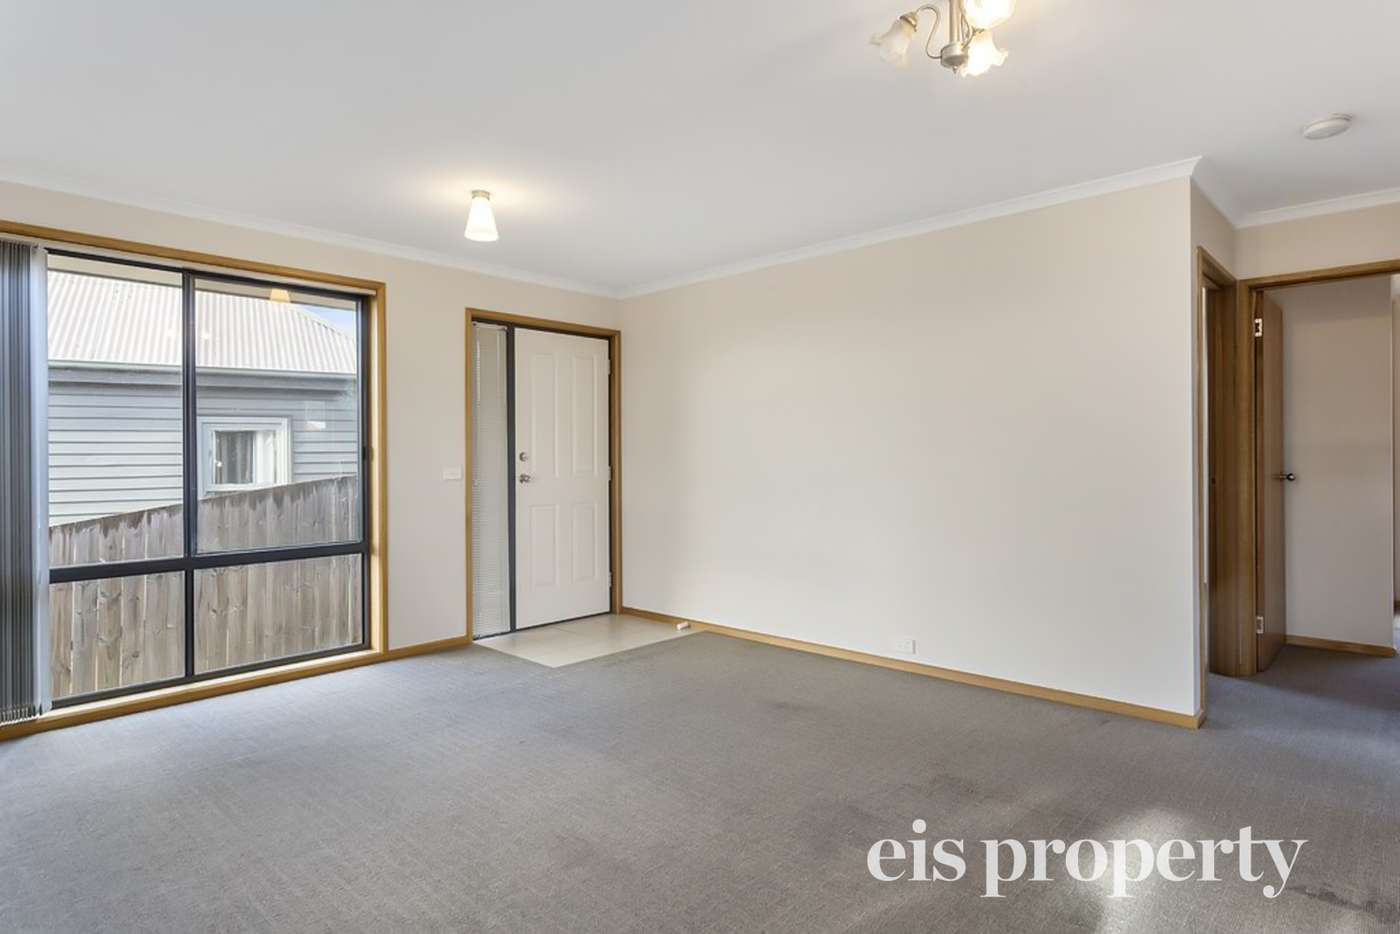 Sixth view of Homely unit listing, 1/74 Brent Street, Glenorchy TAS 7010